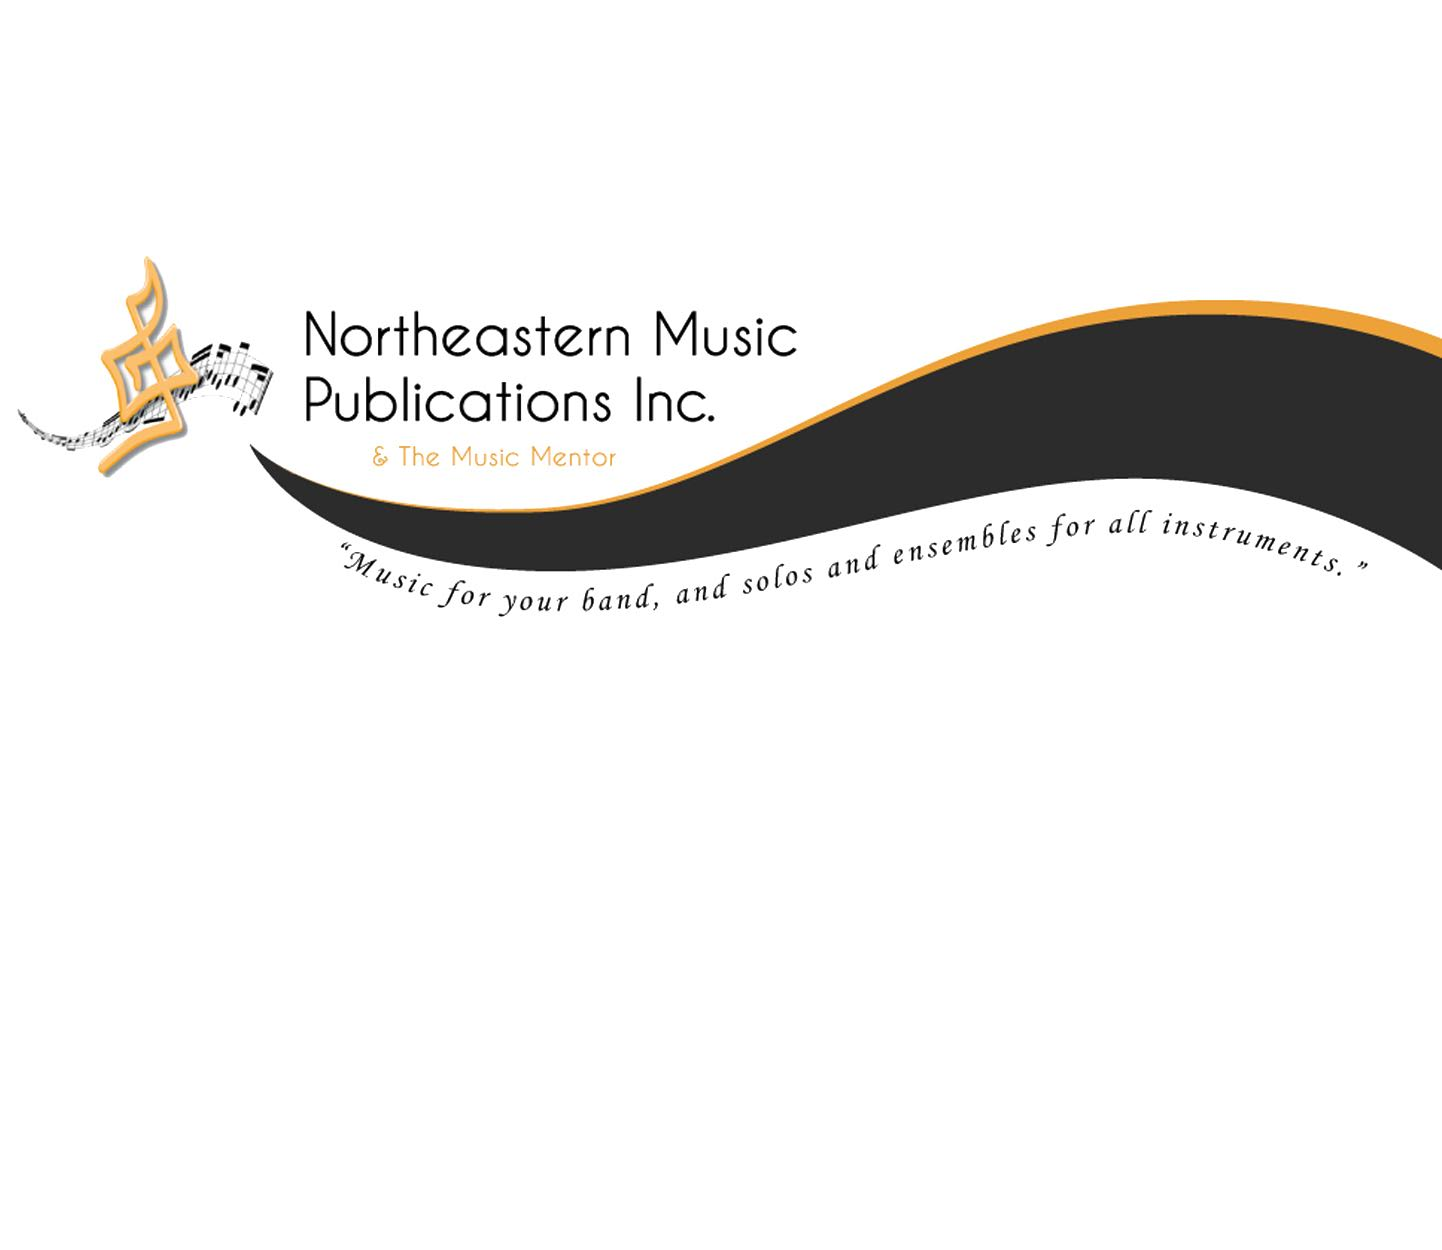 Northeastern Music Publications